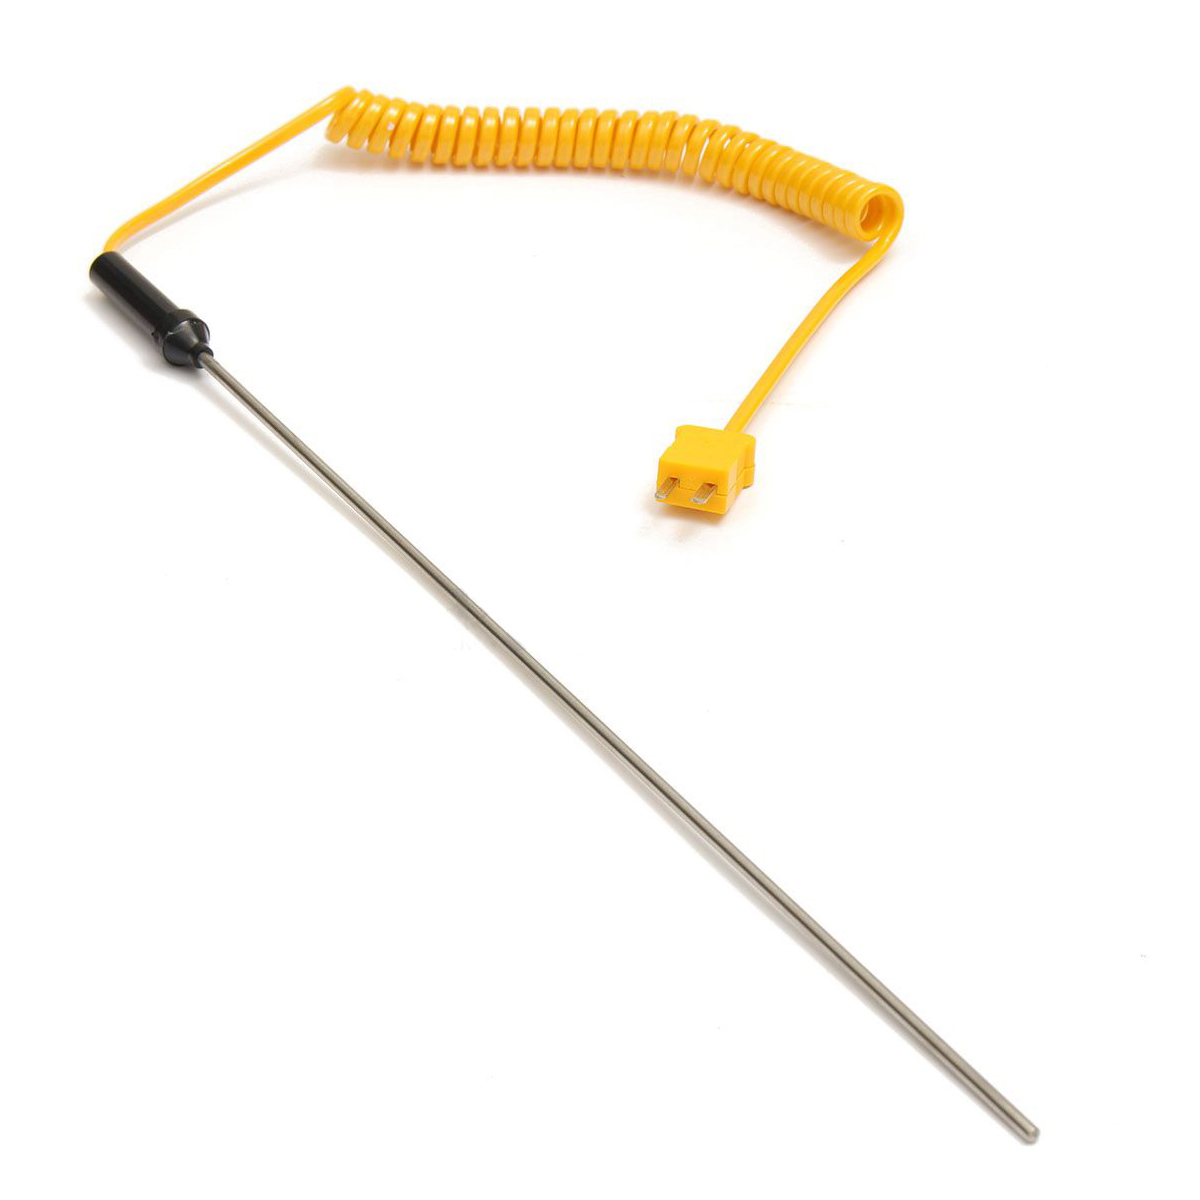 -50 Celsius - 1200 Celsius K-type thermocouple probe thermometer Digit New Probe Length:300MM